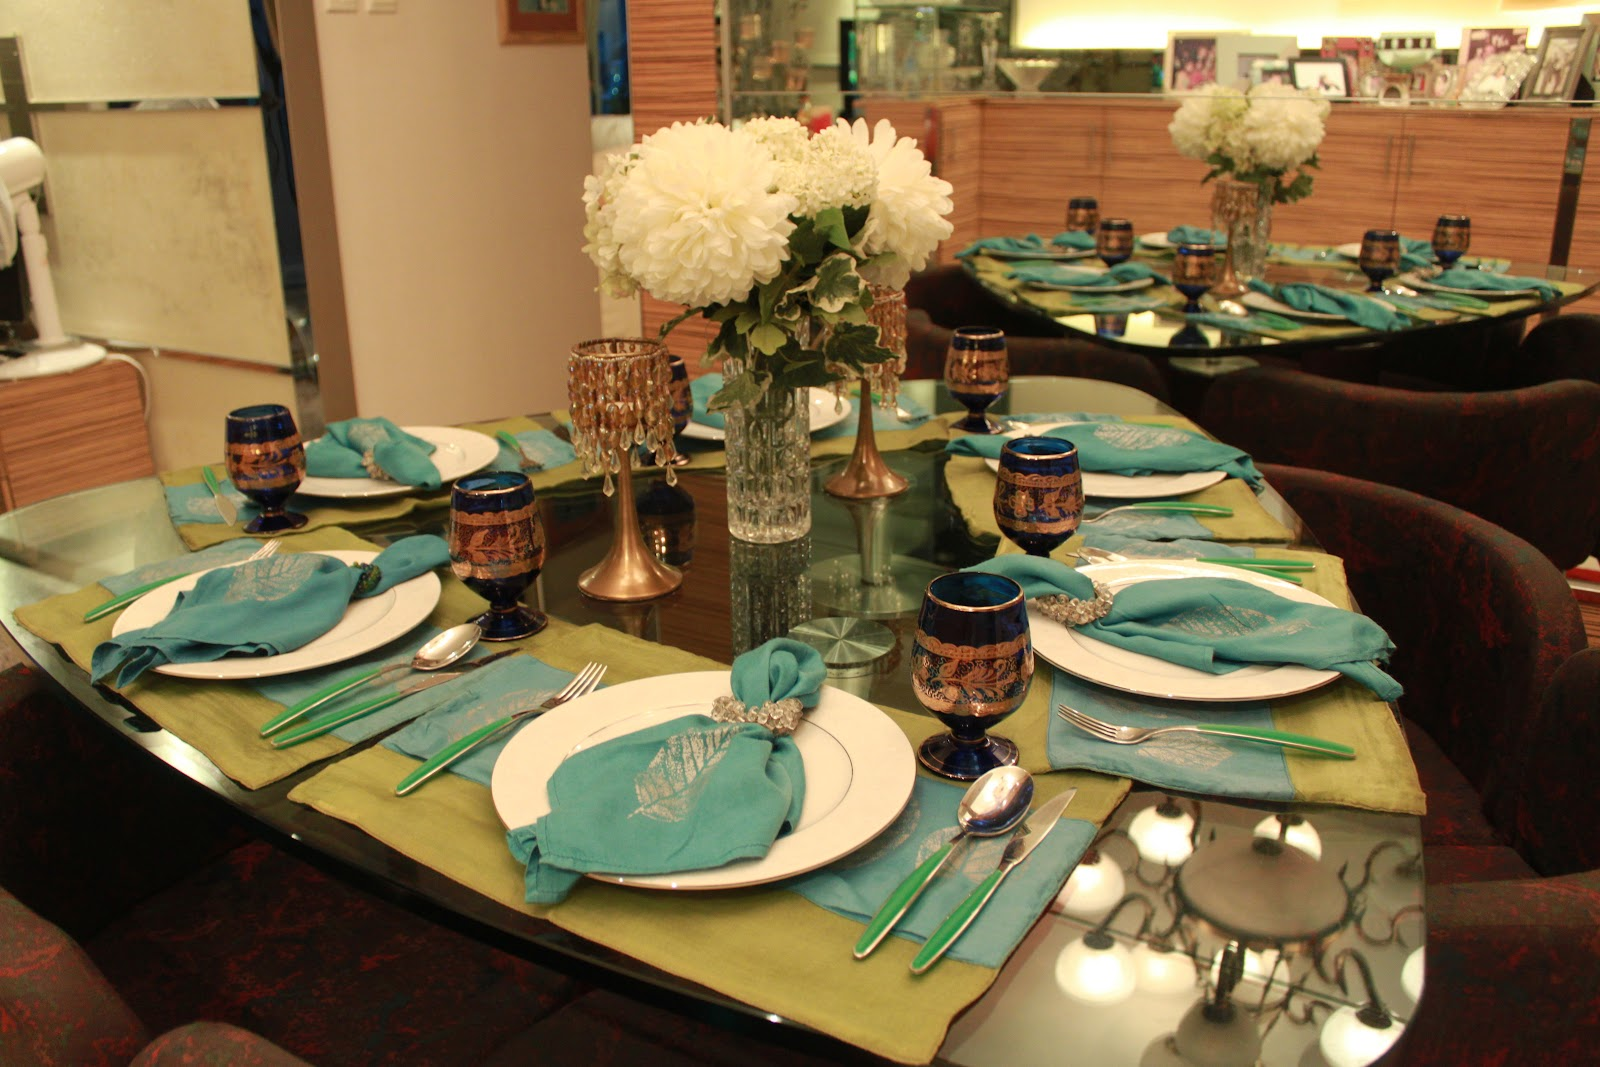 Meenu's awesome table setting